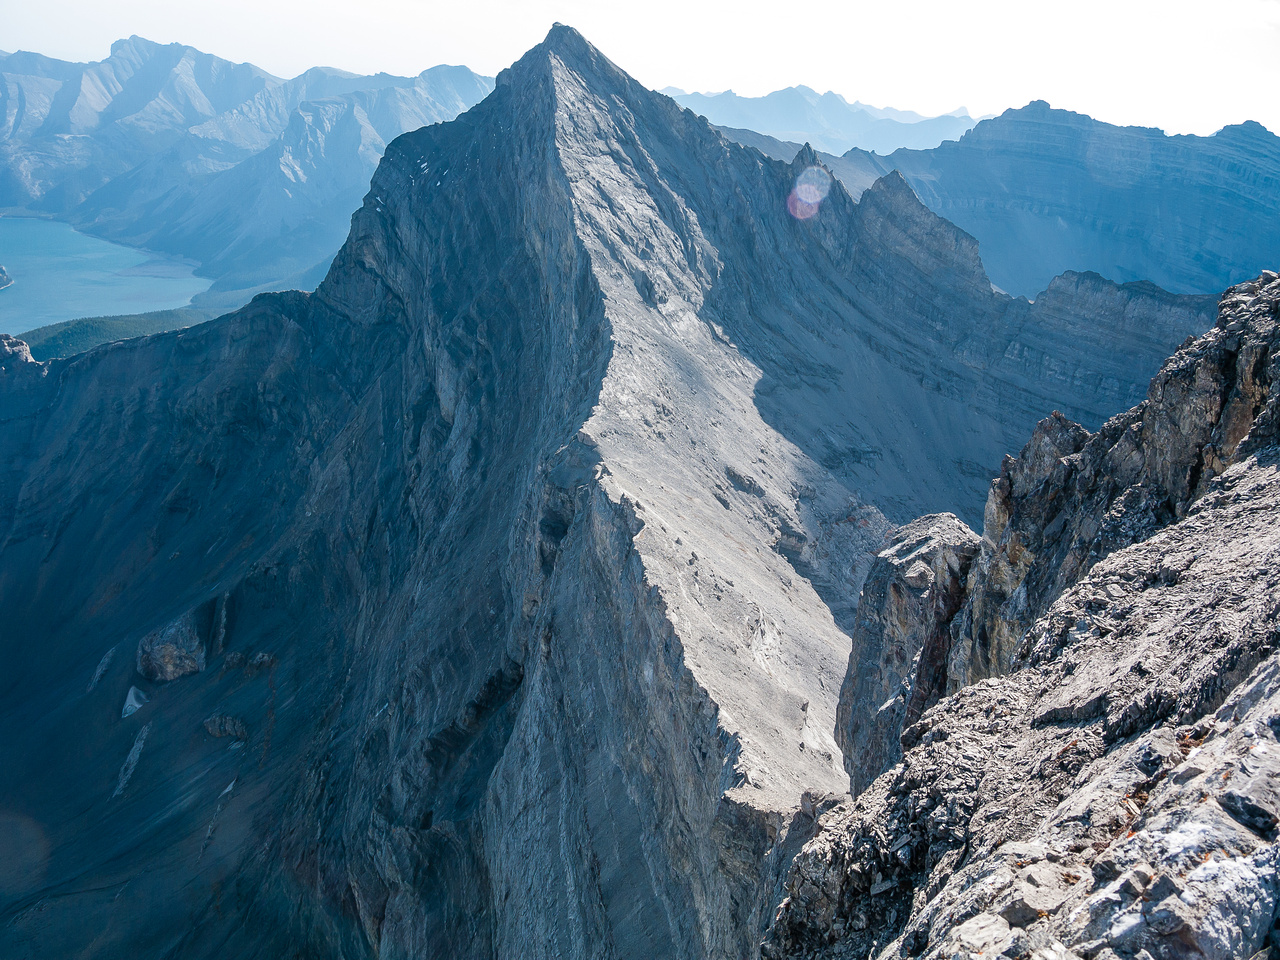 Mount Girouard looks impressive from the summit of Inglismaldie! So does the east face / cliff.